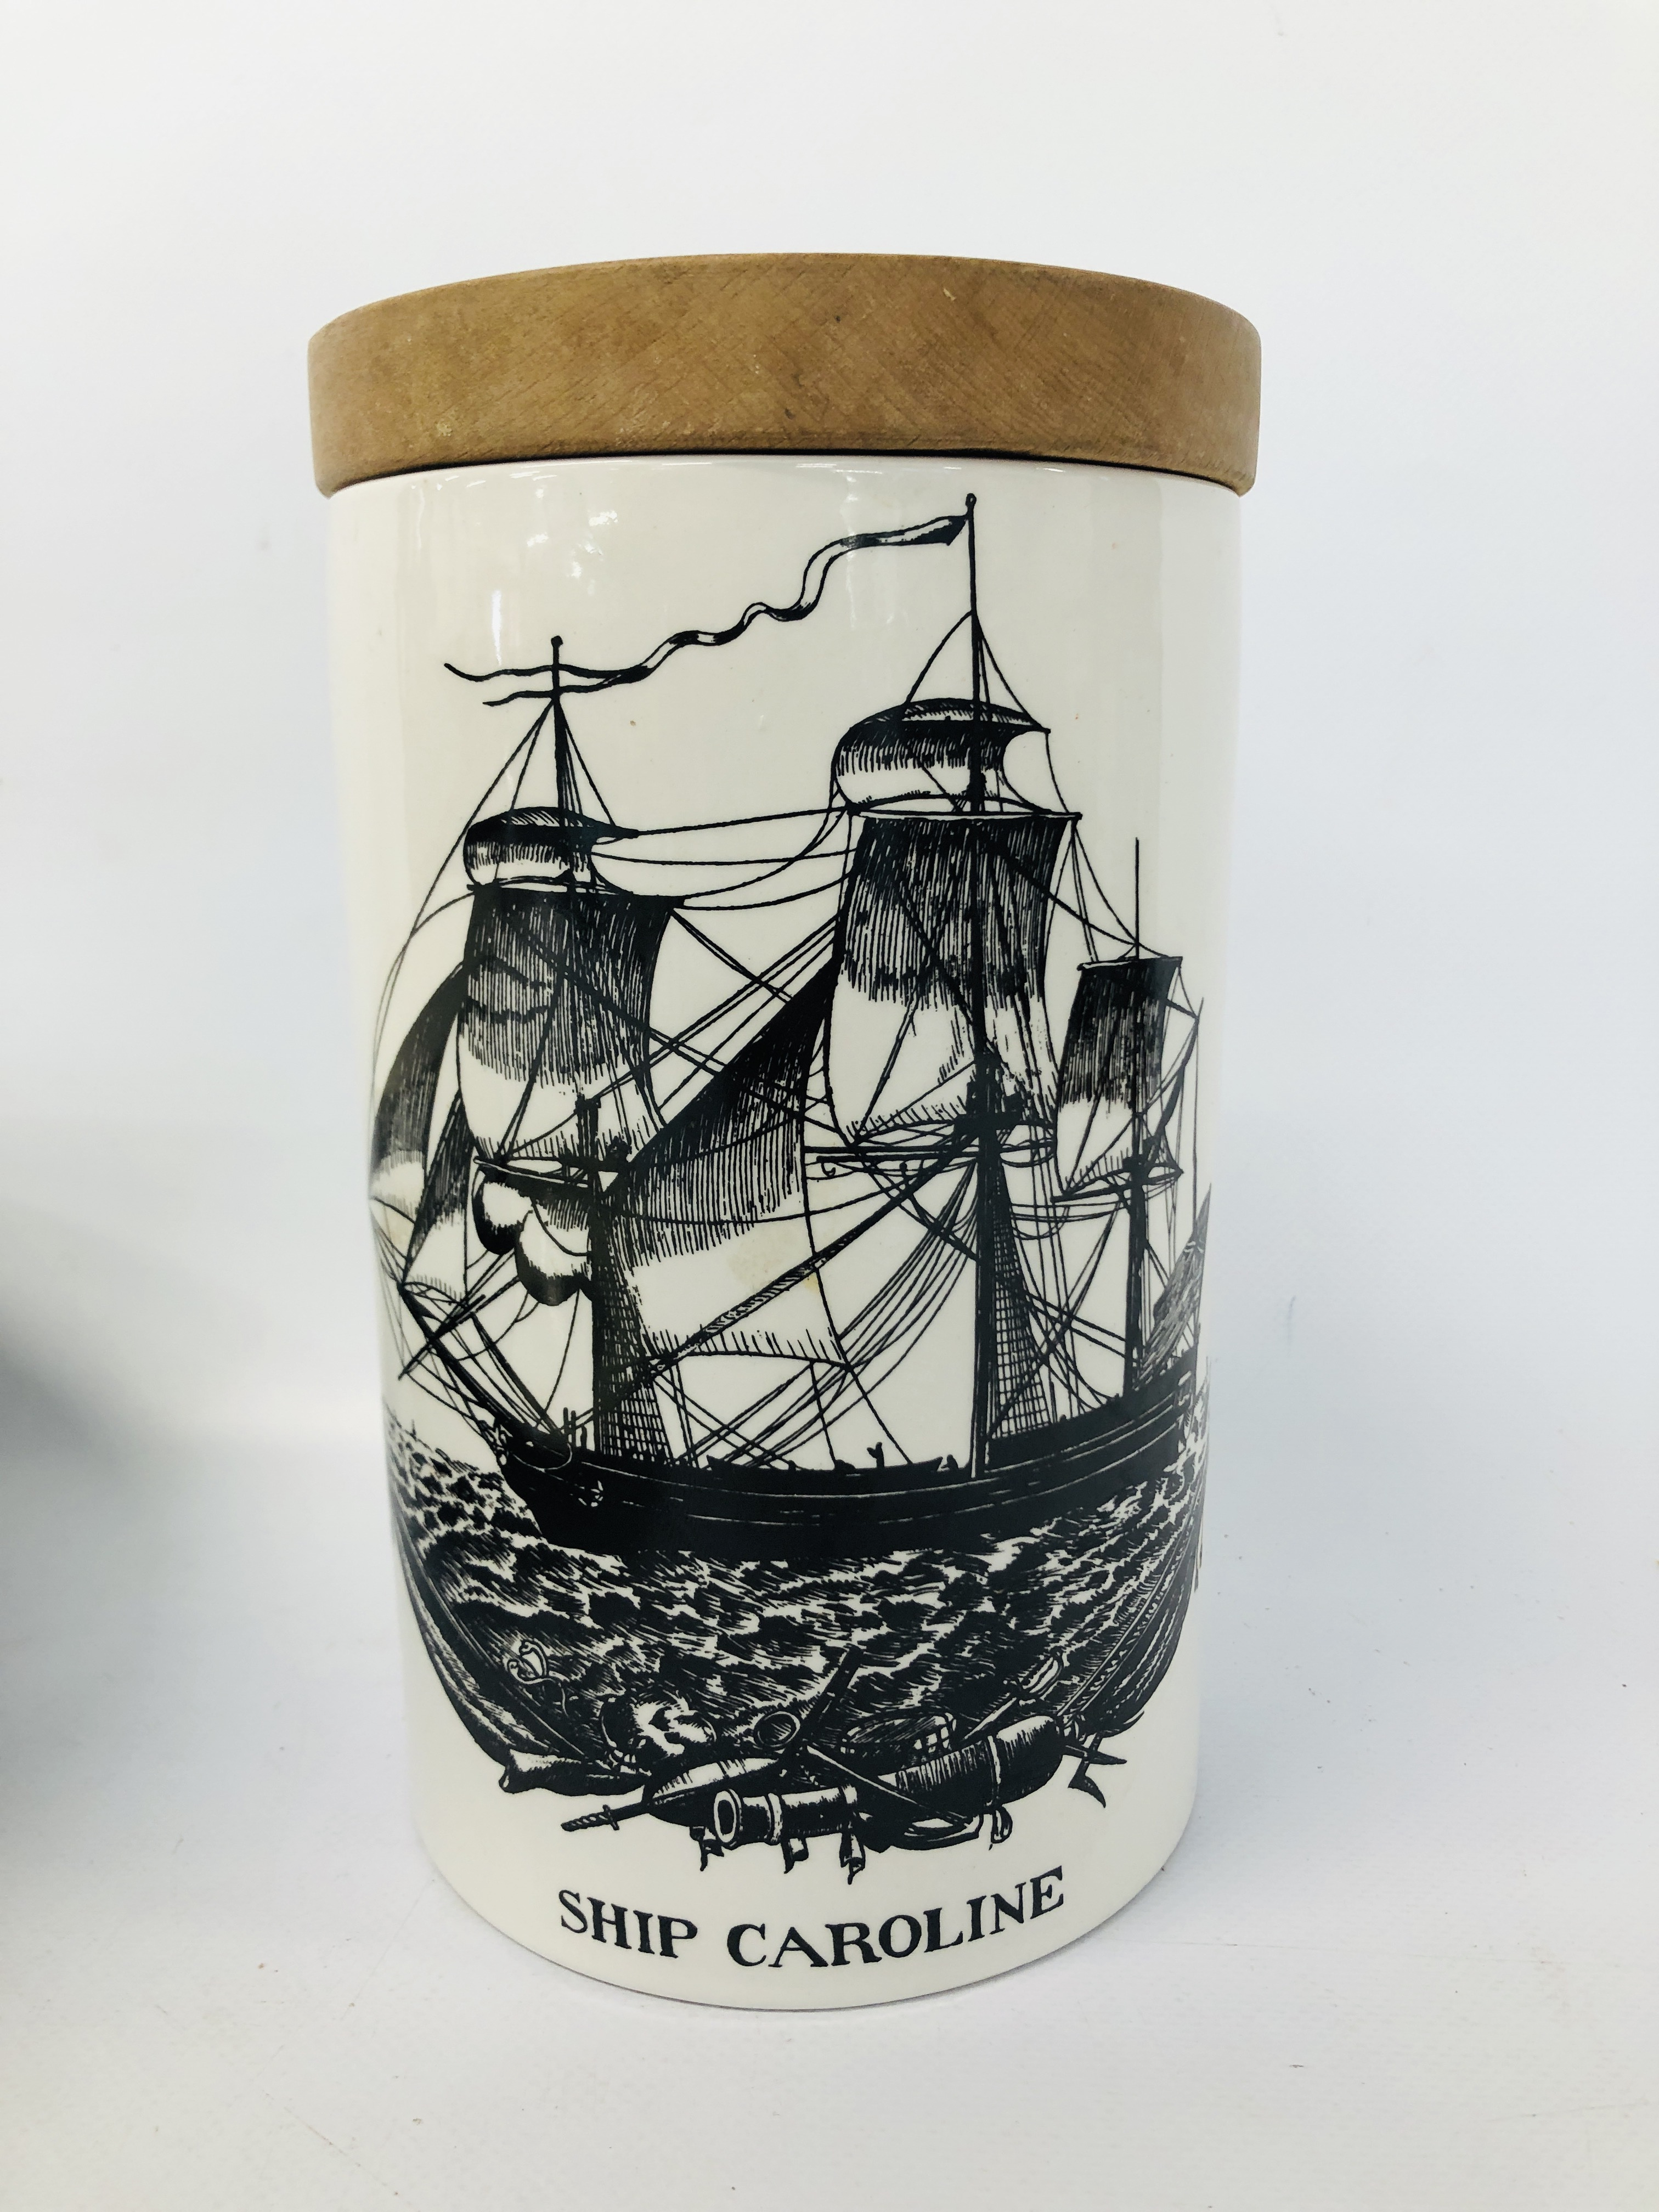 VINTAGE WOODEN TEA CADDY WITH HANDPAINTED SHIPPING SCENE, H.M. - Image 2 of 16